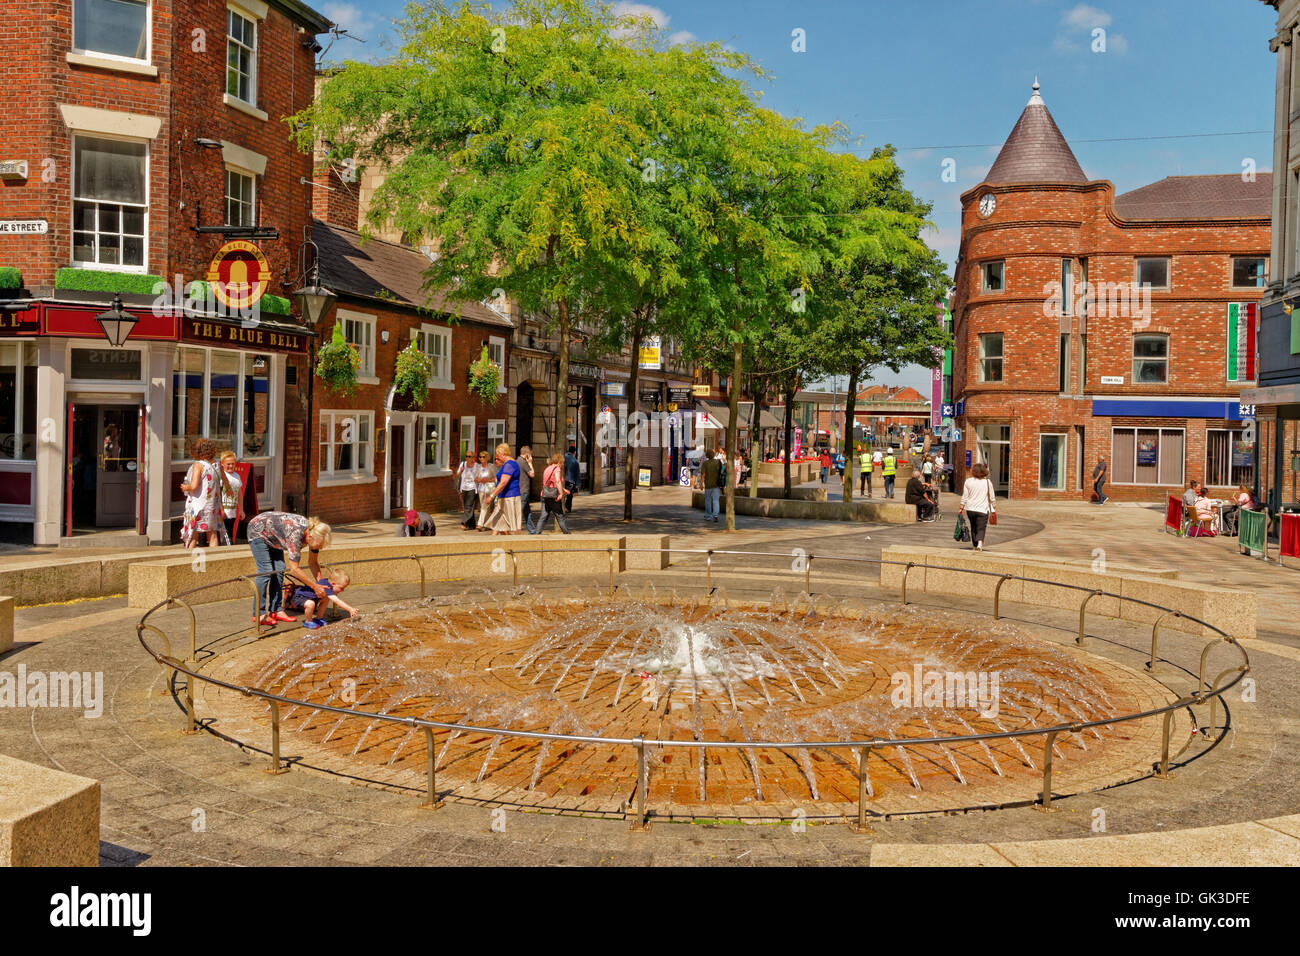 Fountains on pedestrianised Horsemarket Street at Warrington Town Centre, Cheshire. Stock Photo